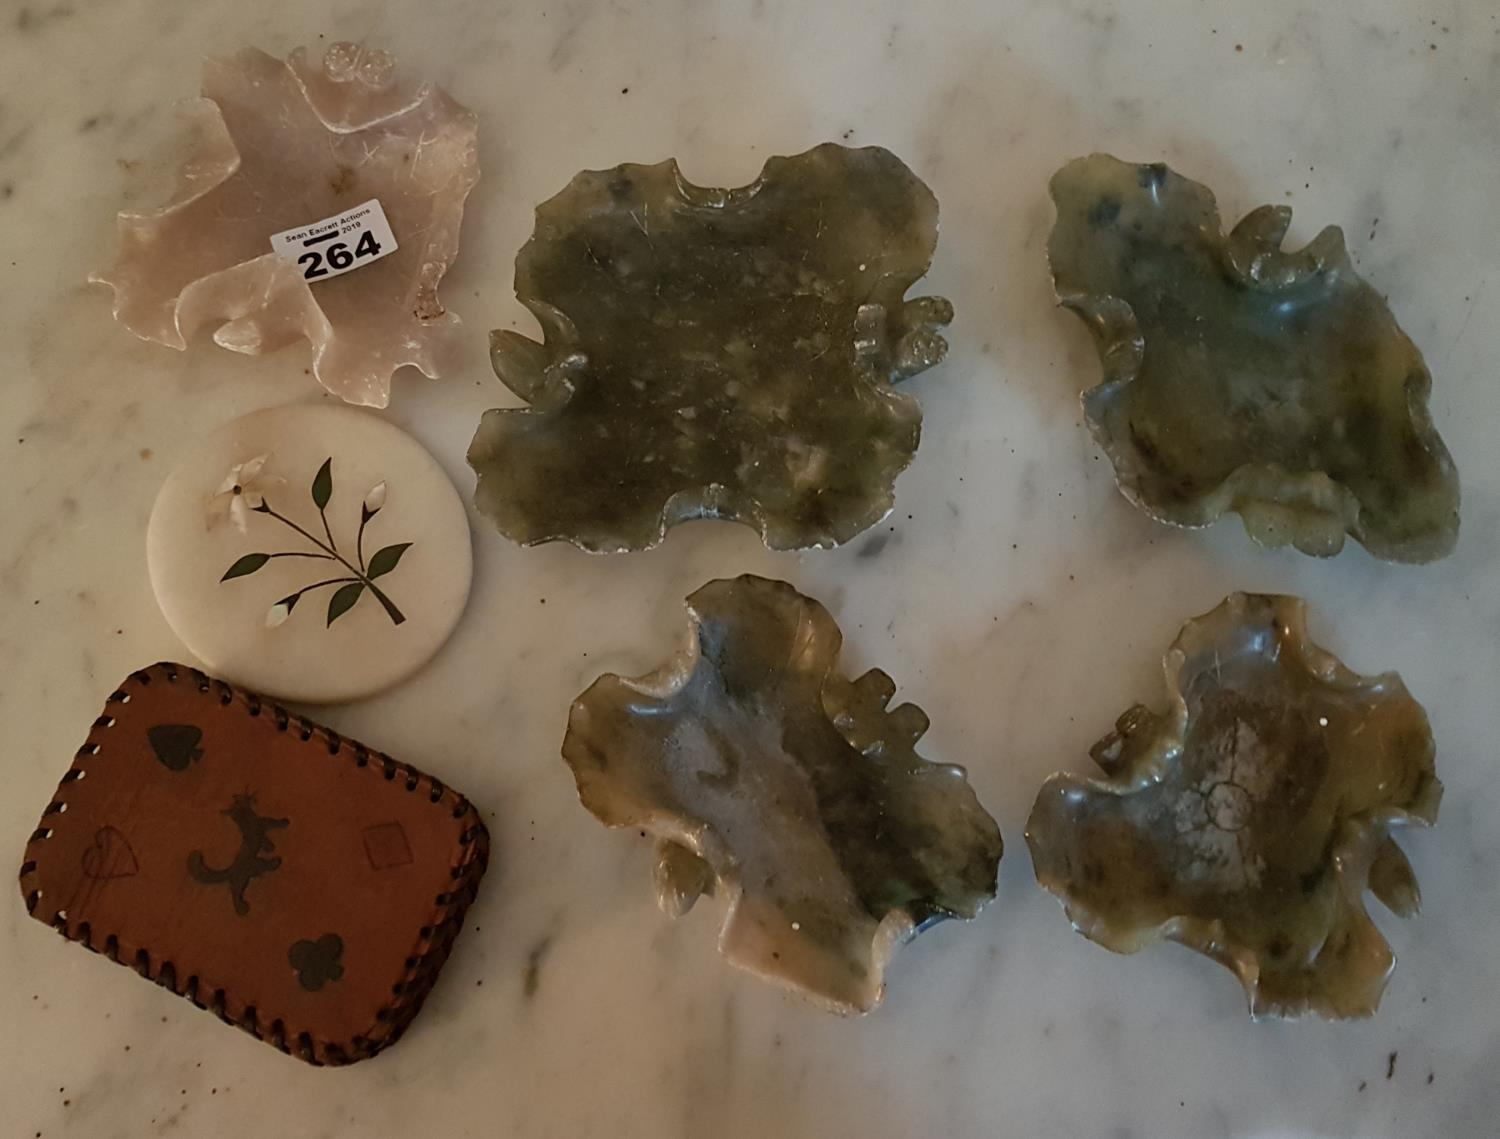 Lot 264 - A group of Jade style Stone Ashtrays along with other items.